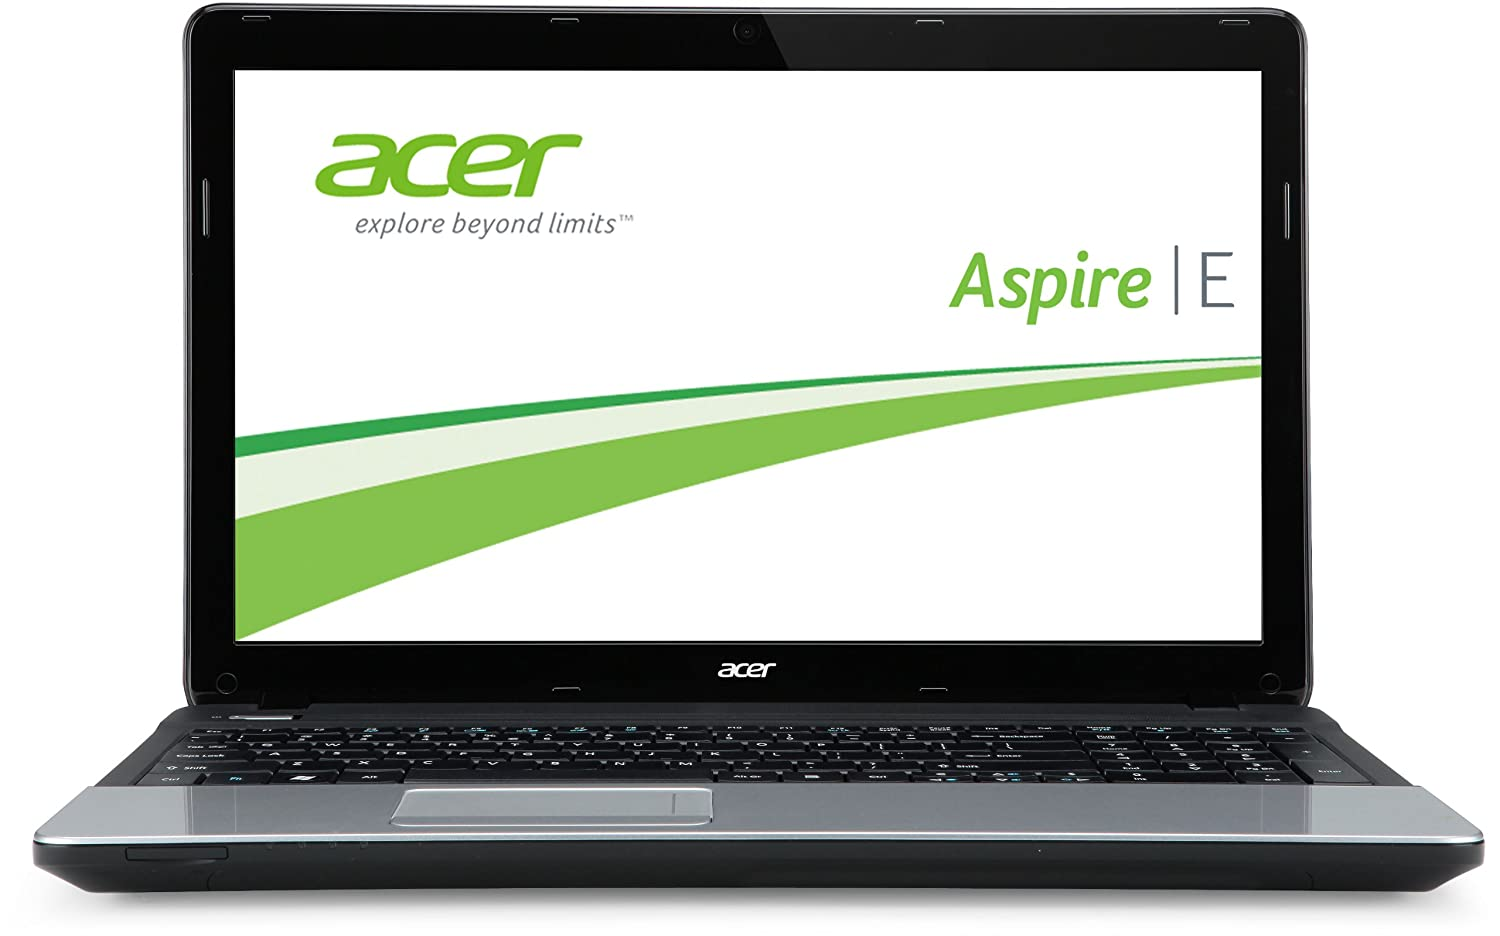 Acer E1-571-32344G50M Drivers for Mac